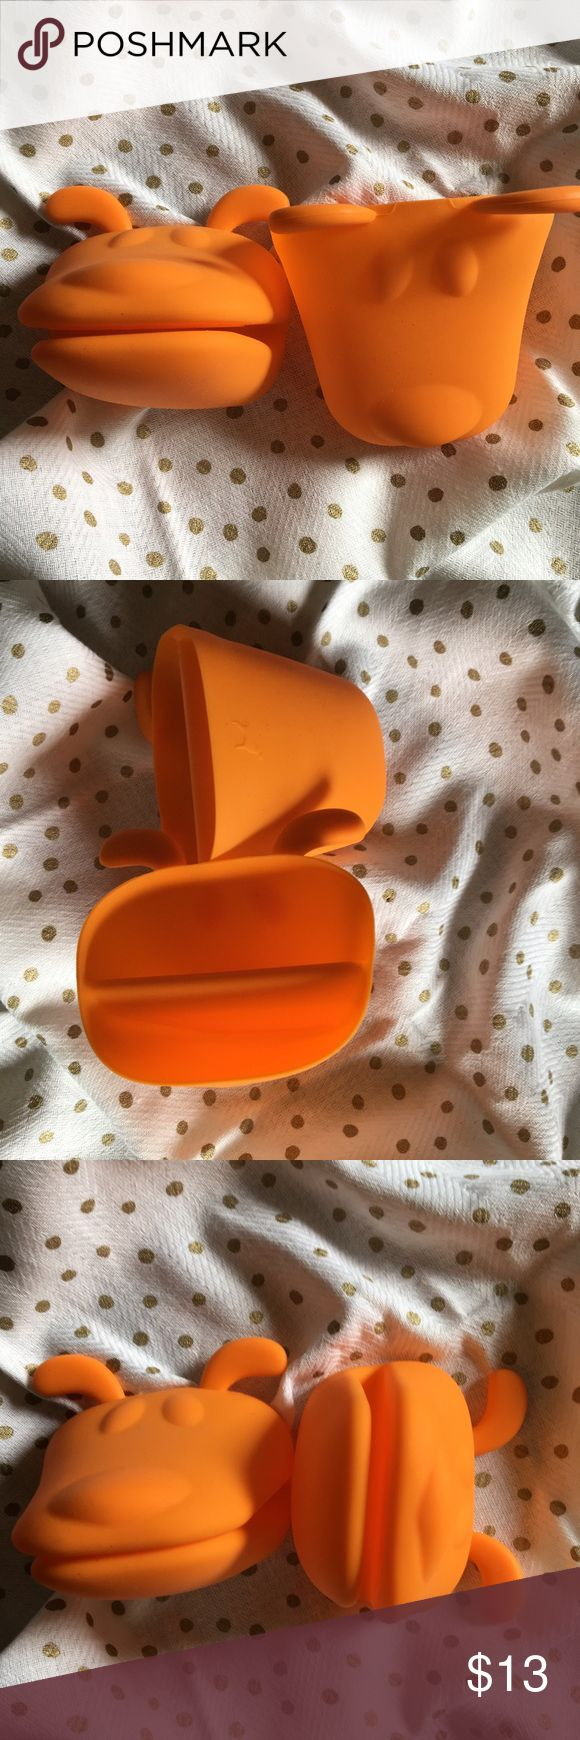 Adorable Orange Puppy Silicone Potholders So cute, never used, mostly bc we make a mess in the kitchen and I didn't want to ruin them. So they are like new, rec'd in a secret santa swap and I don't know what the brand is but there's a tiny little dog on the back of the holder that I tried to show in one photo. Great shower gift for a new couple! unknown Other